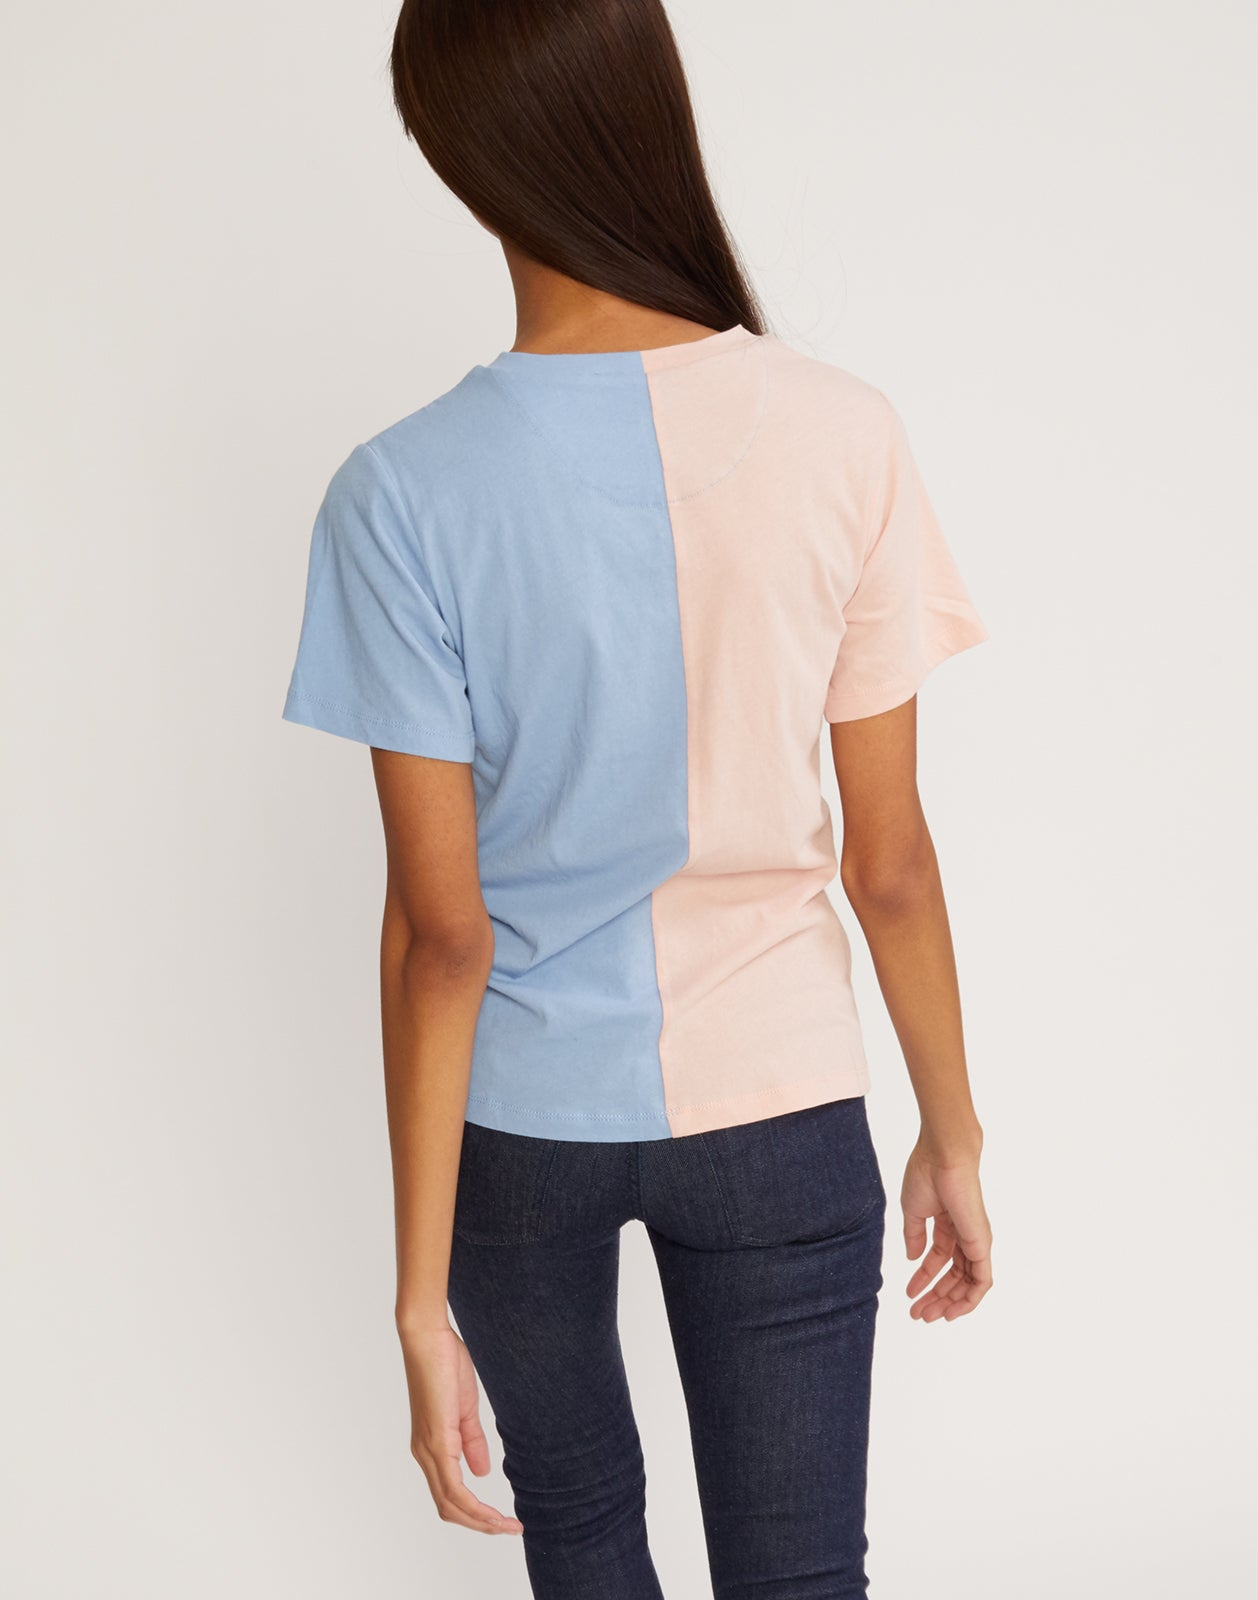 Back view of the short sleeved half blue, half pink caliyork tee in soft cotton.